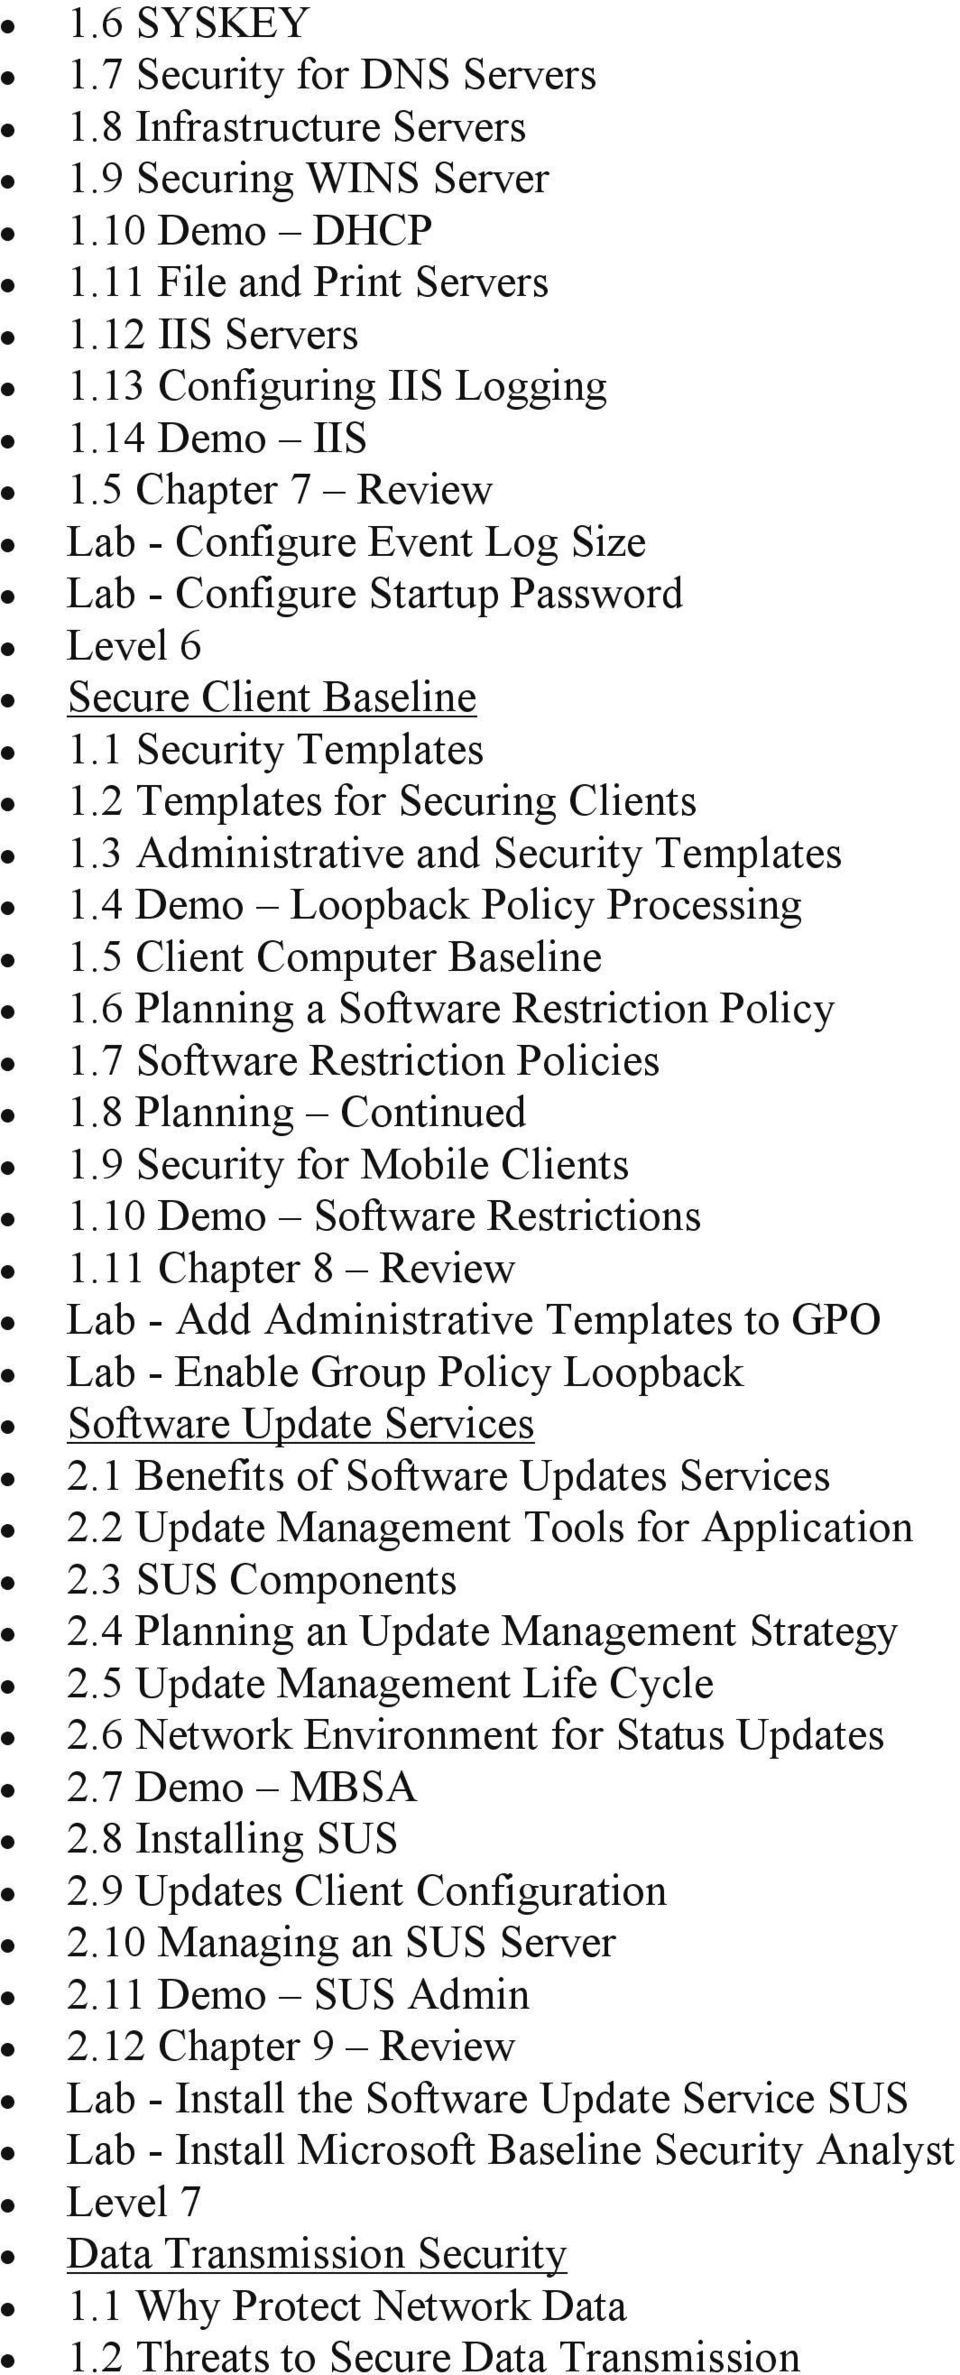 3 Administrative and Security Templates 1.4 Demo Loopback Policy Processing 1.5 Client Computer Baseline 1.6 Planning a Software Restriction Policy 1.7 Software Restriction Policies 1.